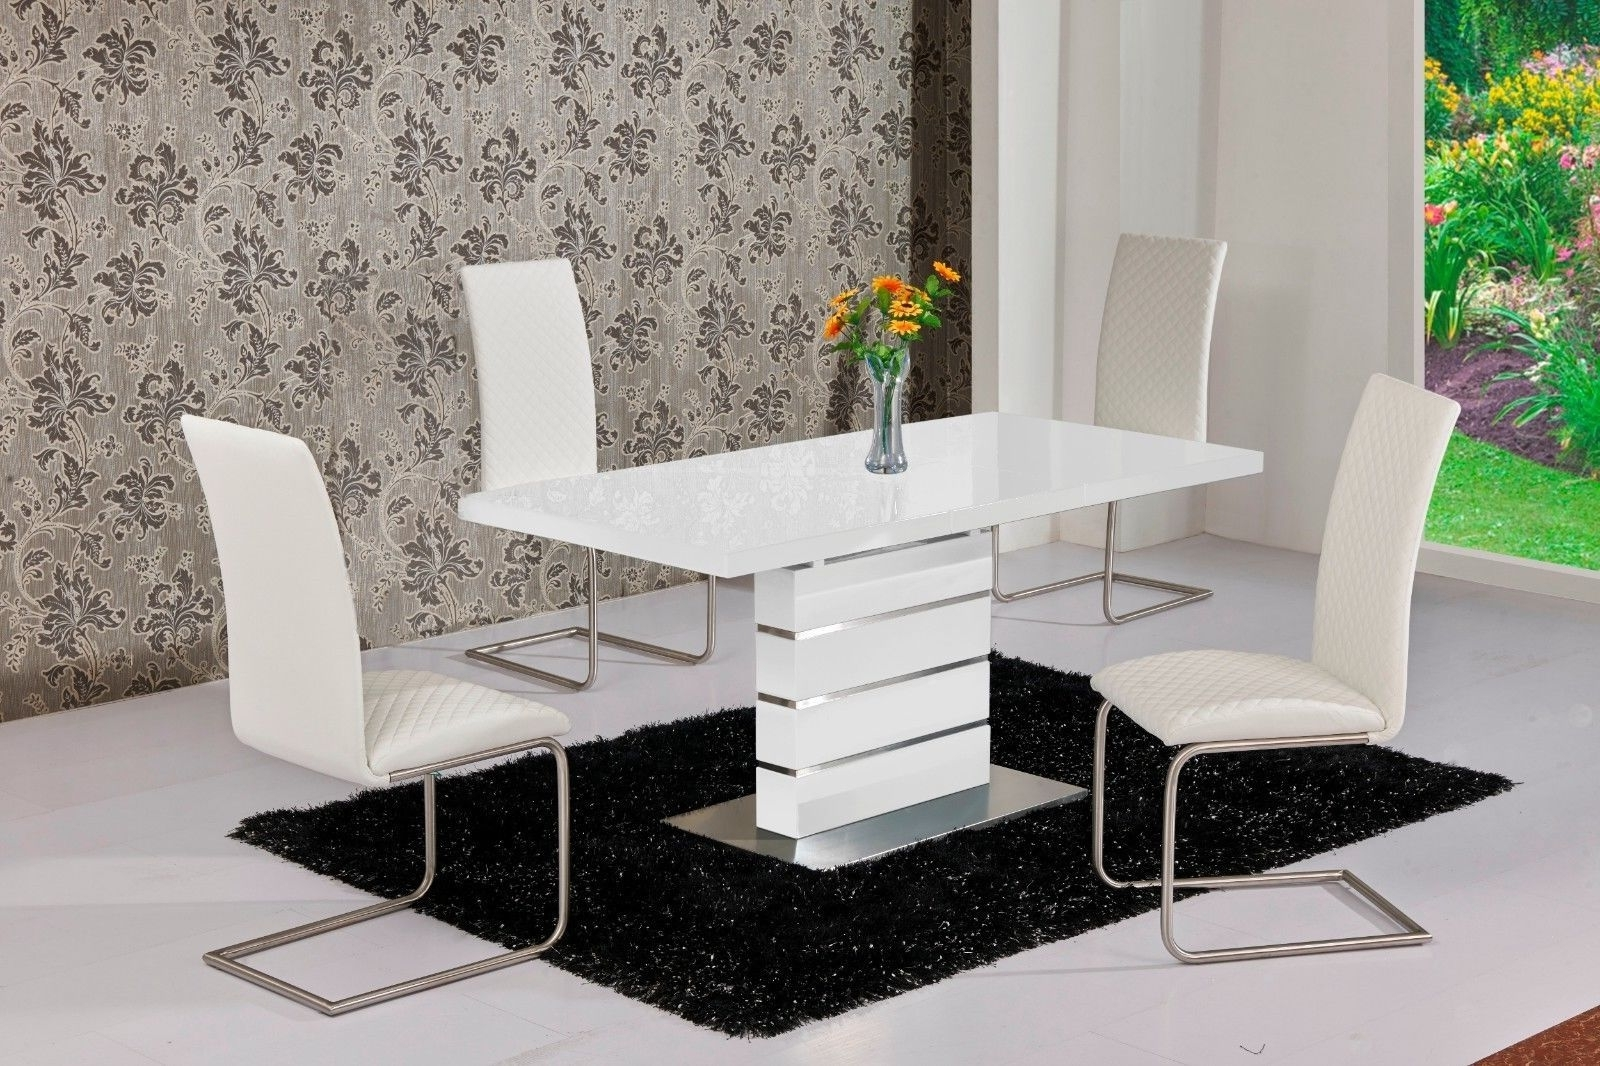 Widely Used Mace High Gloss Extending 120 160 Dining Table & Chair Set – White Pertaining To Hi Gloss Dining Tables Sets (View 3 of 25)